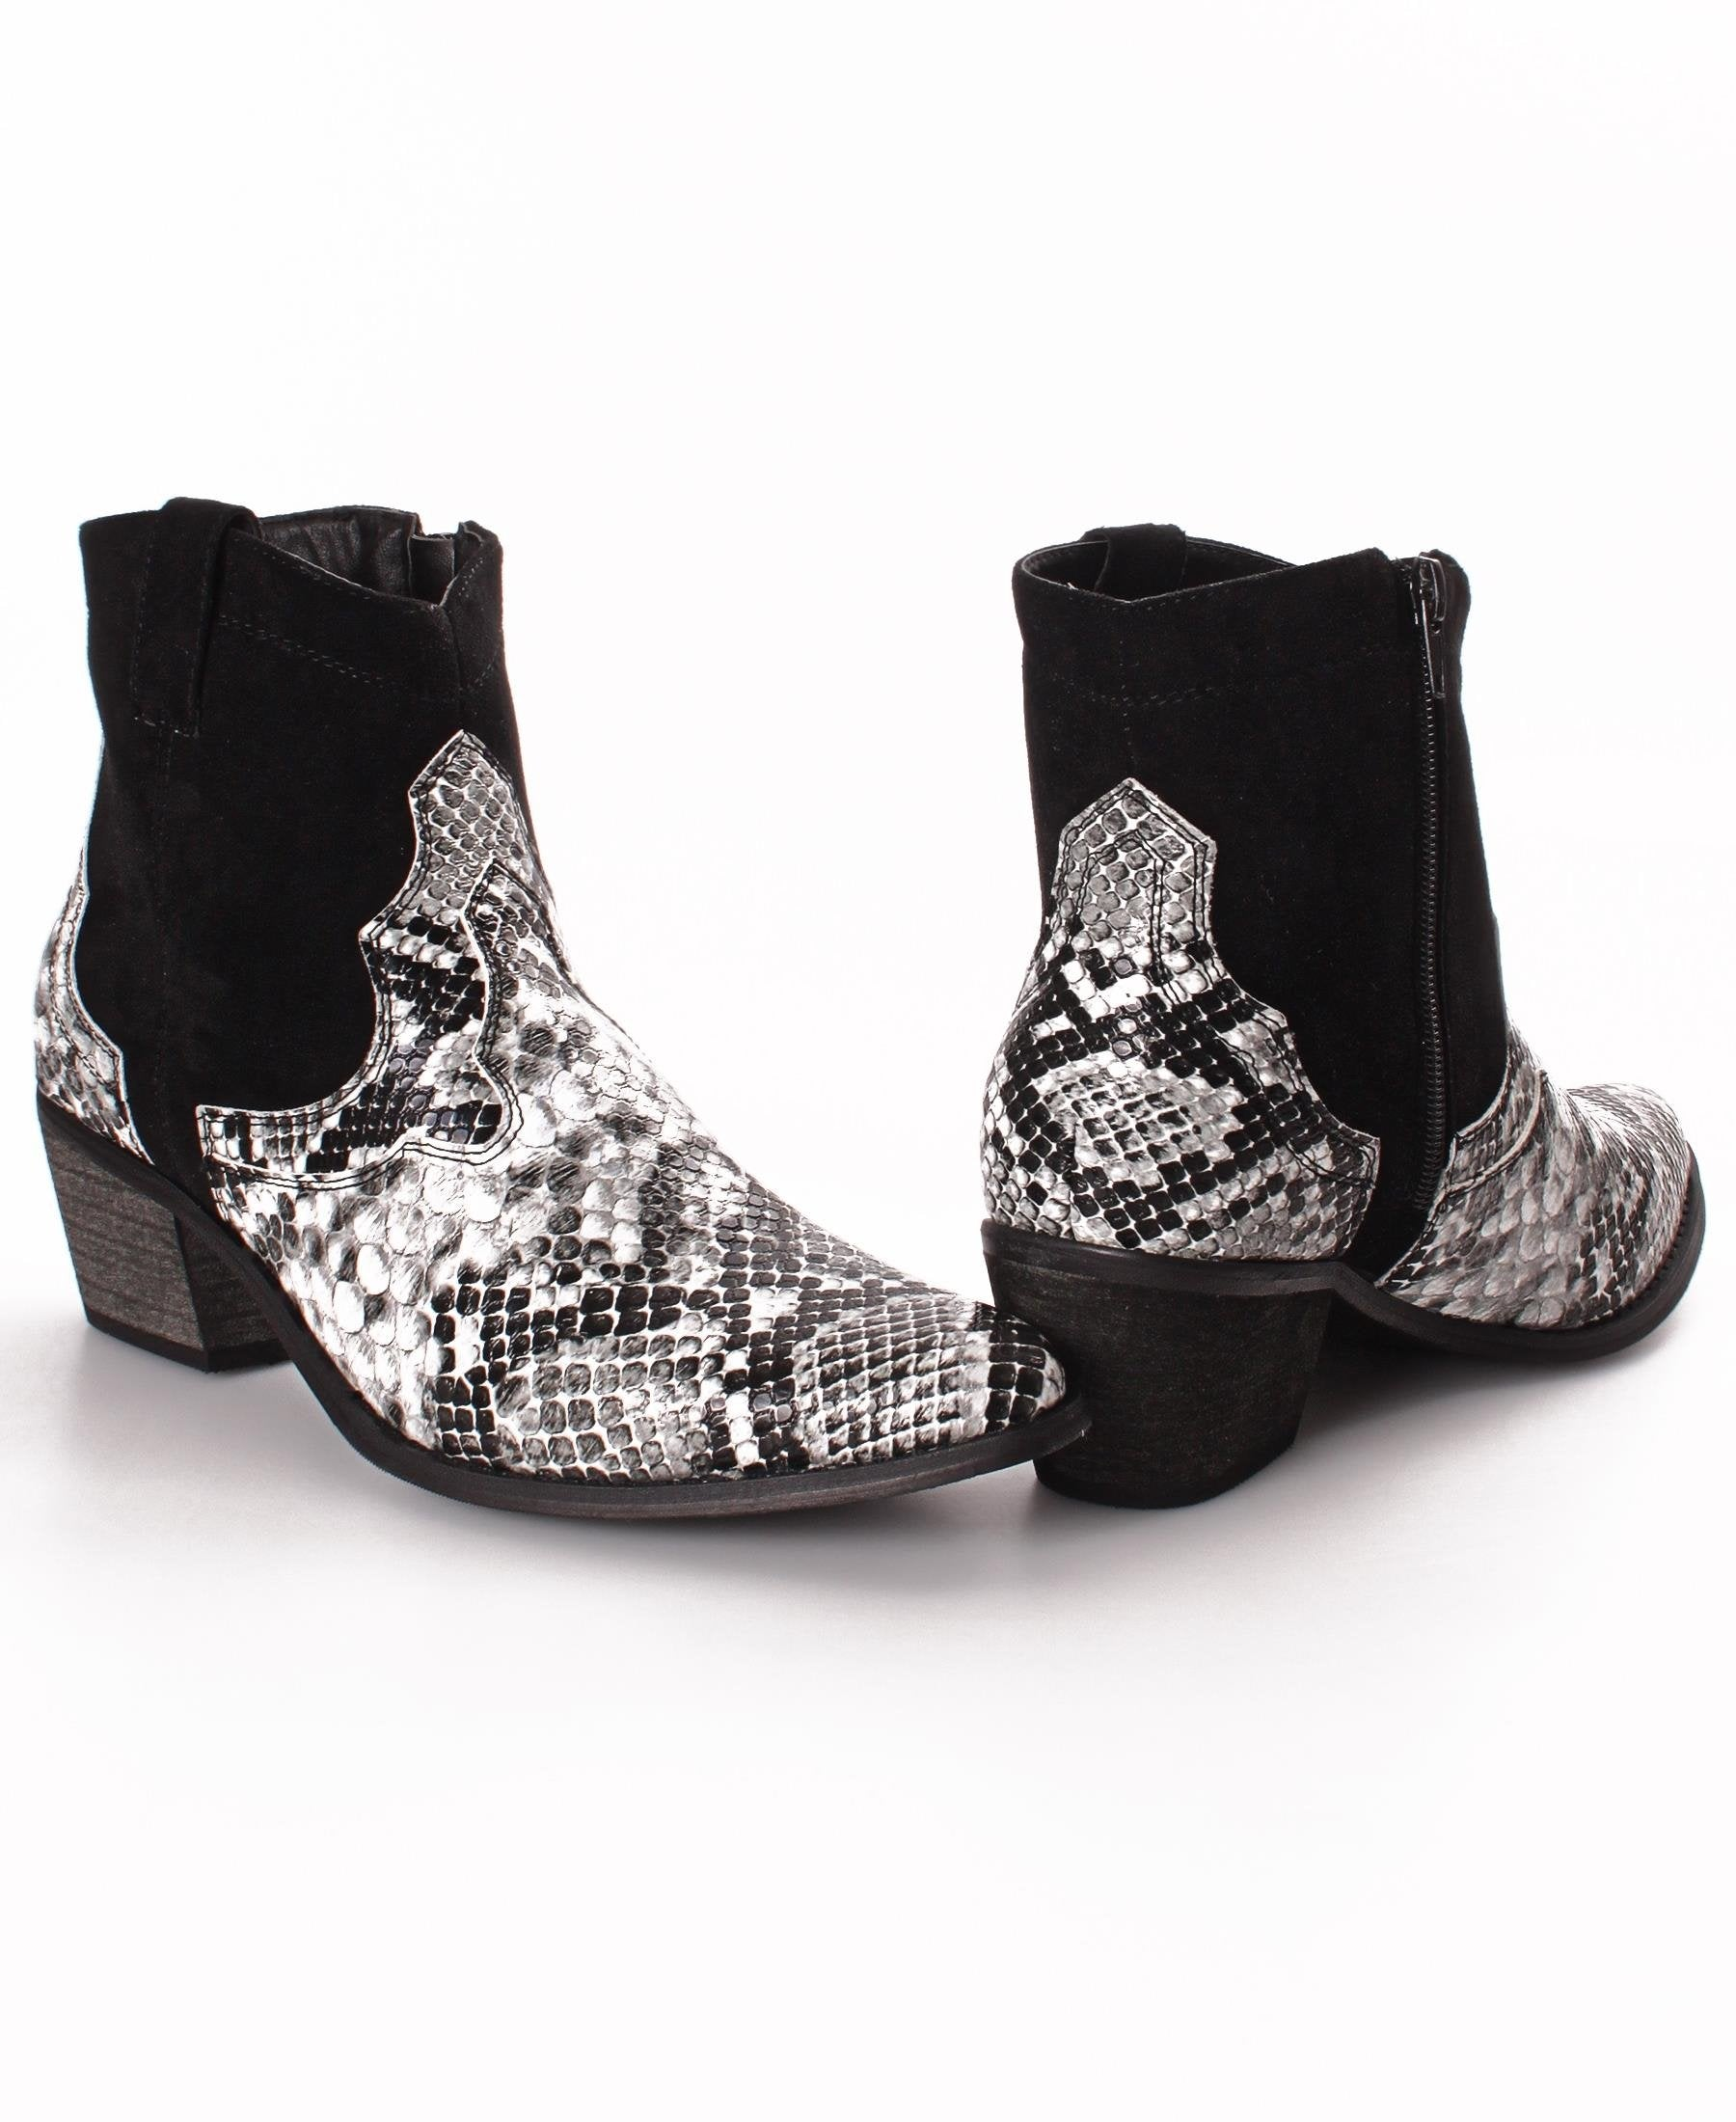 Snake Print Ankle Boots - Black